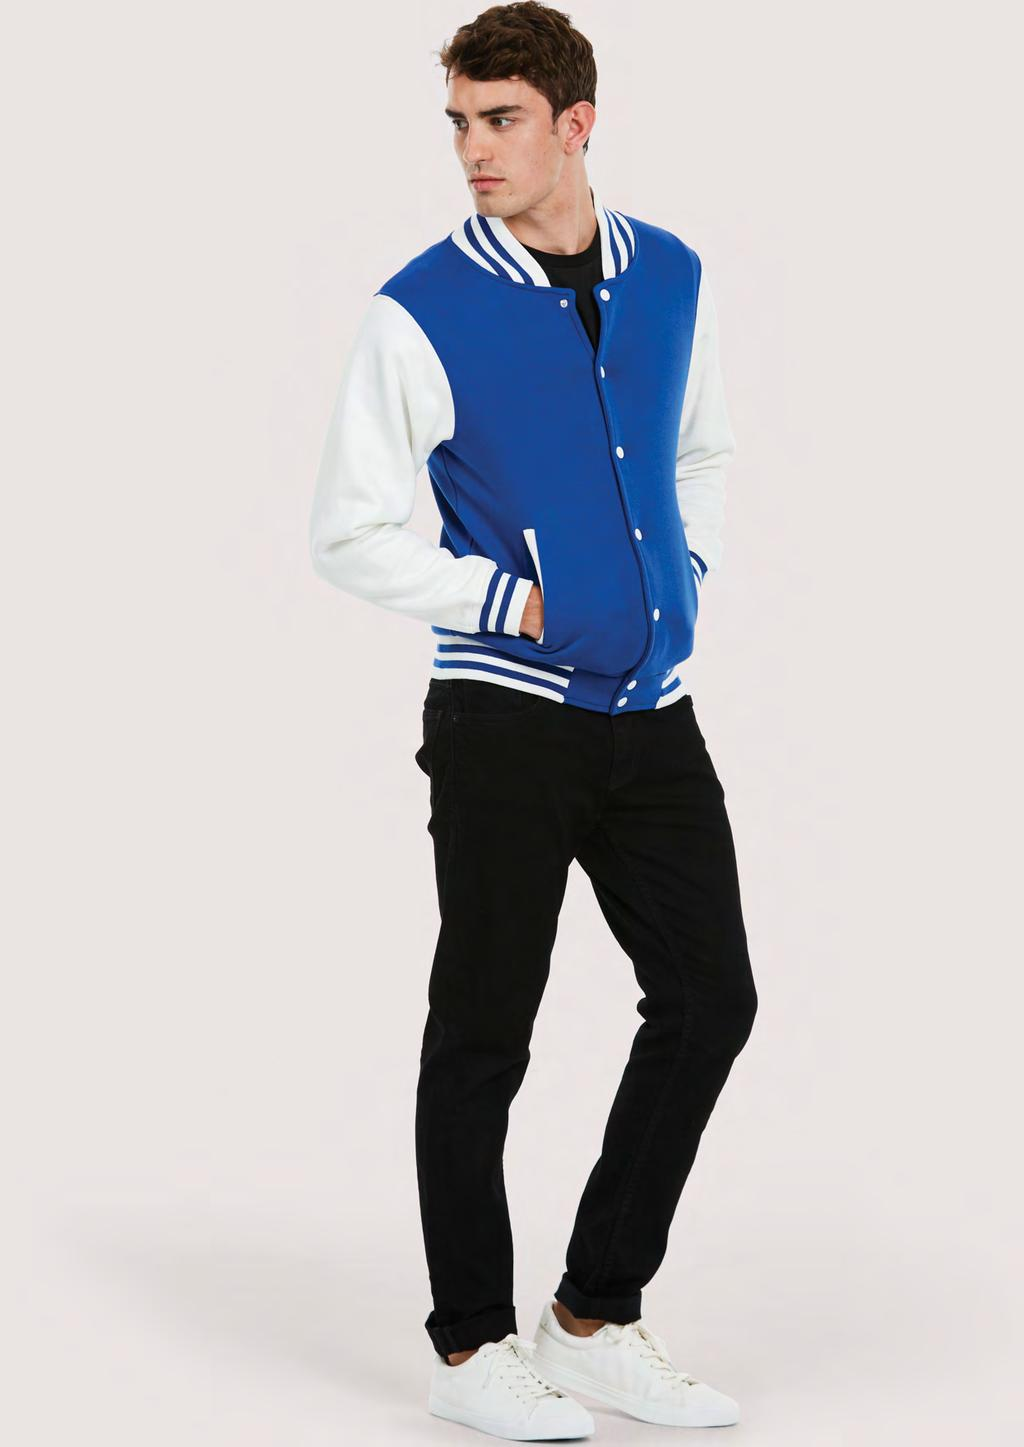 SWEATSHIRTS UC525 MENS VARSITY JACKET 300 40 25/5 50% Polyester 50% Cotton Long Sleeve Collared Neckline Fastening Buttons Two Side Pockets Elasticated Ribbed Cuffs & Welt